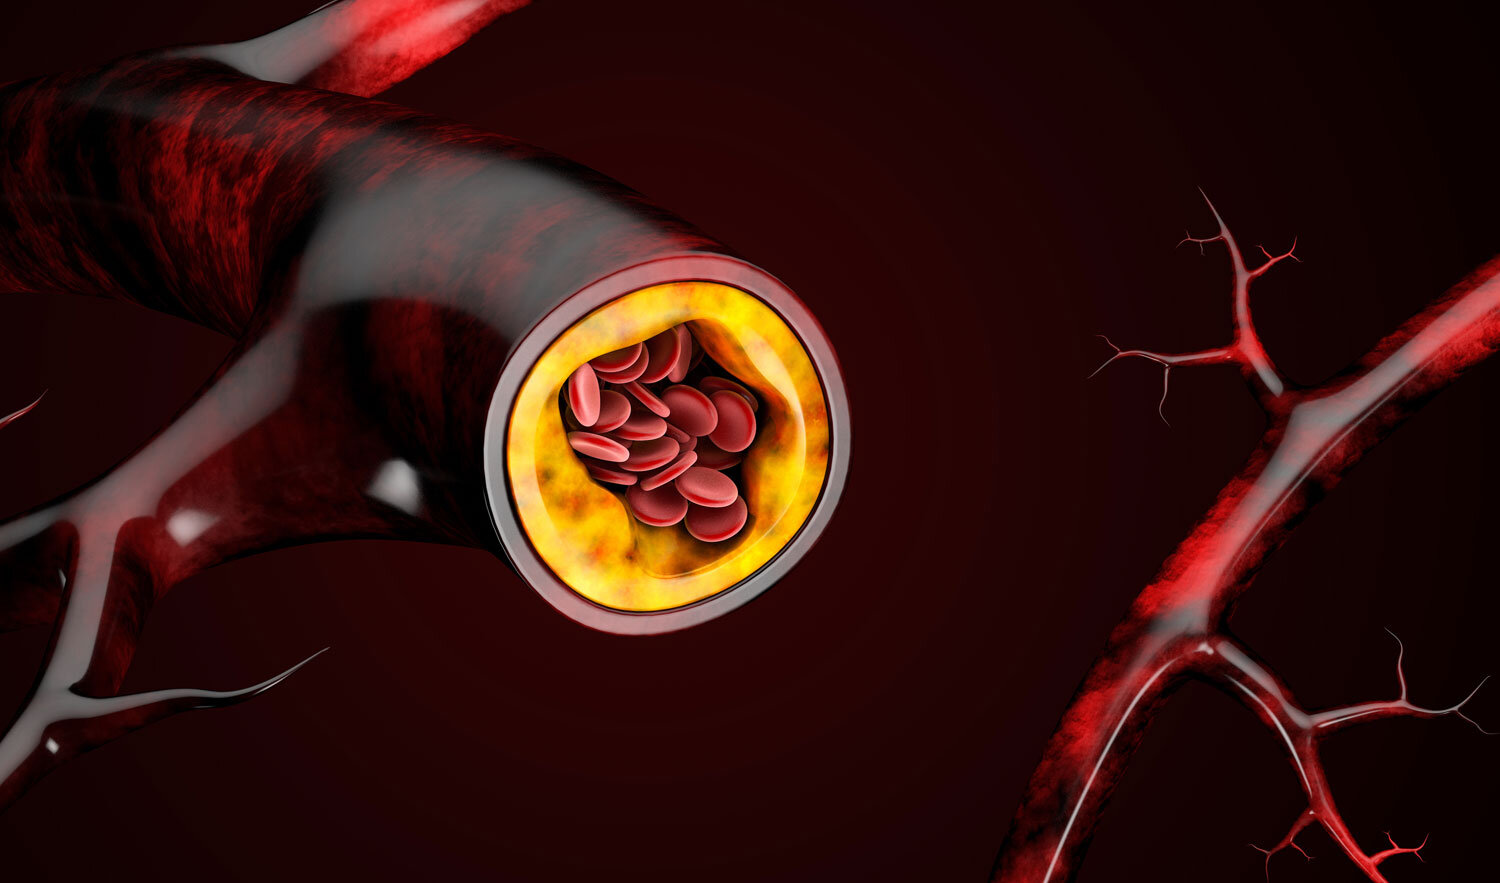 Plaque build up of cholesterol